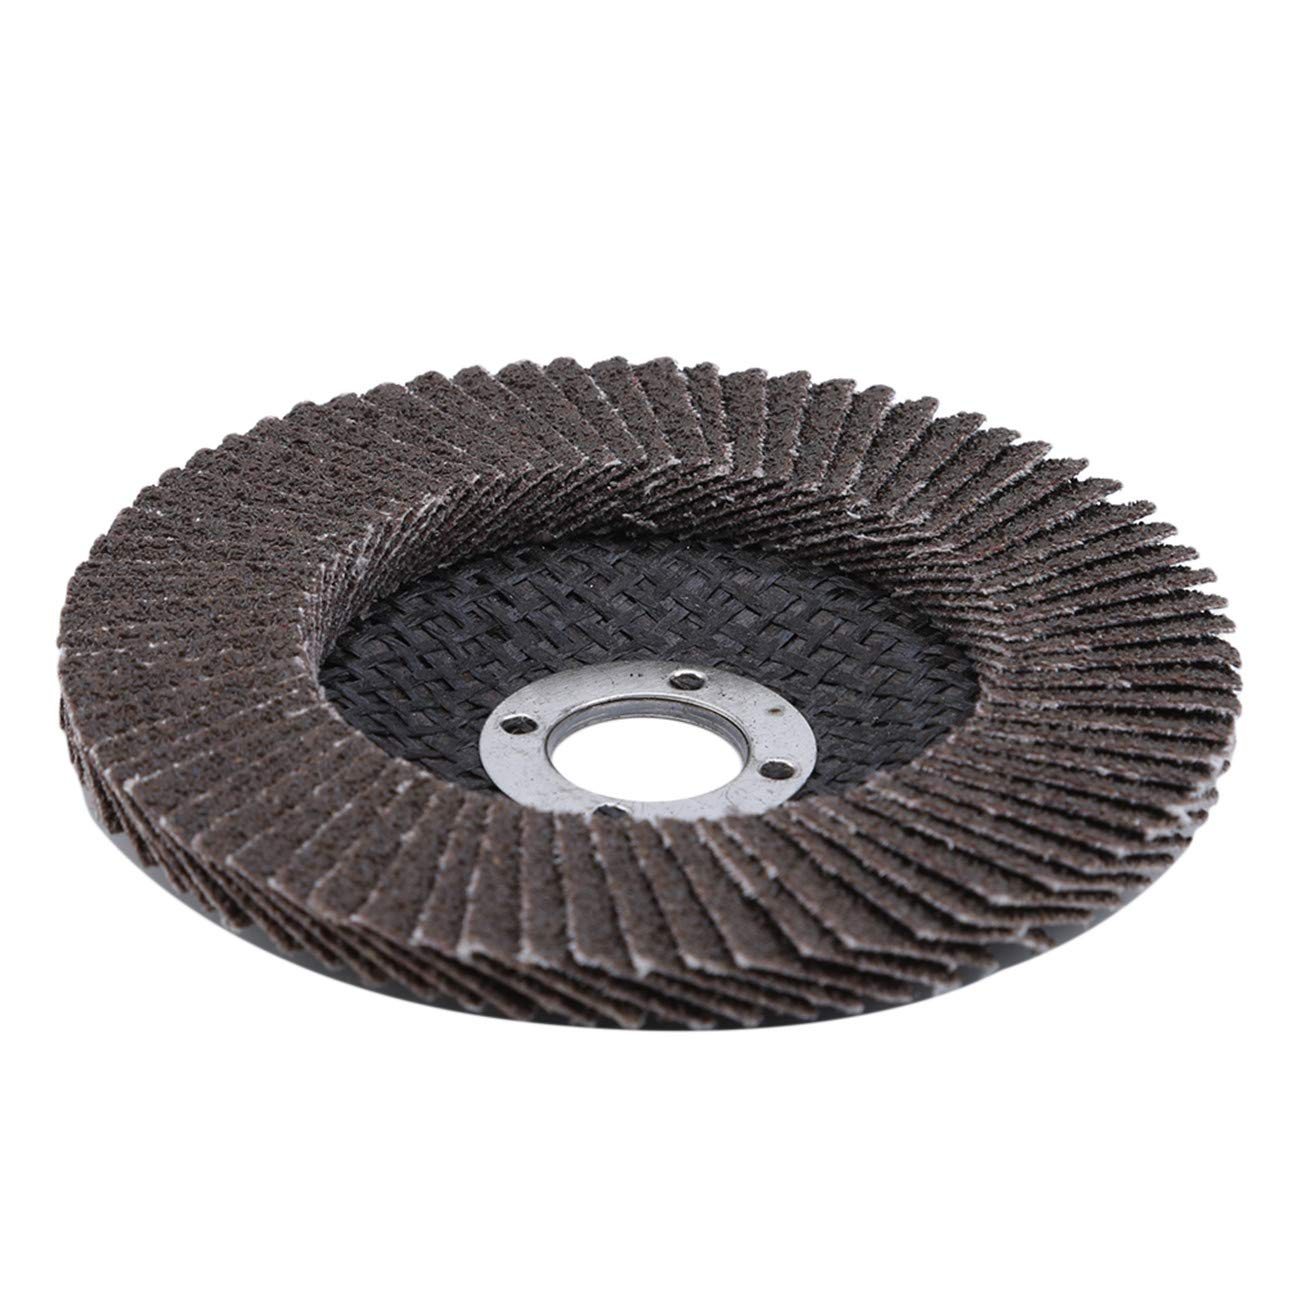 ZALING 1 Piece Practical 100mm Sand Paper Rounds Set Sanding Wheels Polishing Grinding Wheels